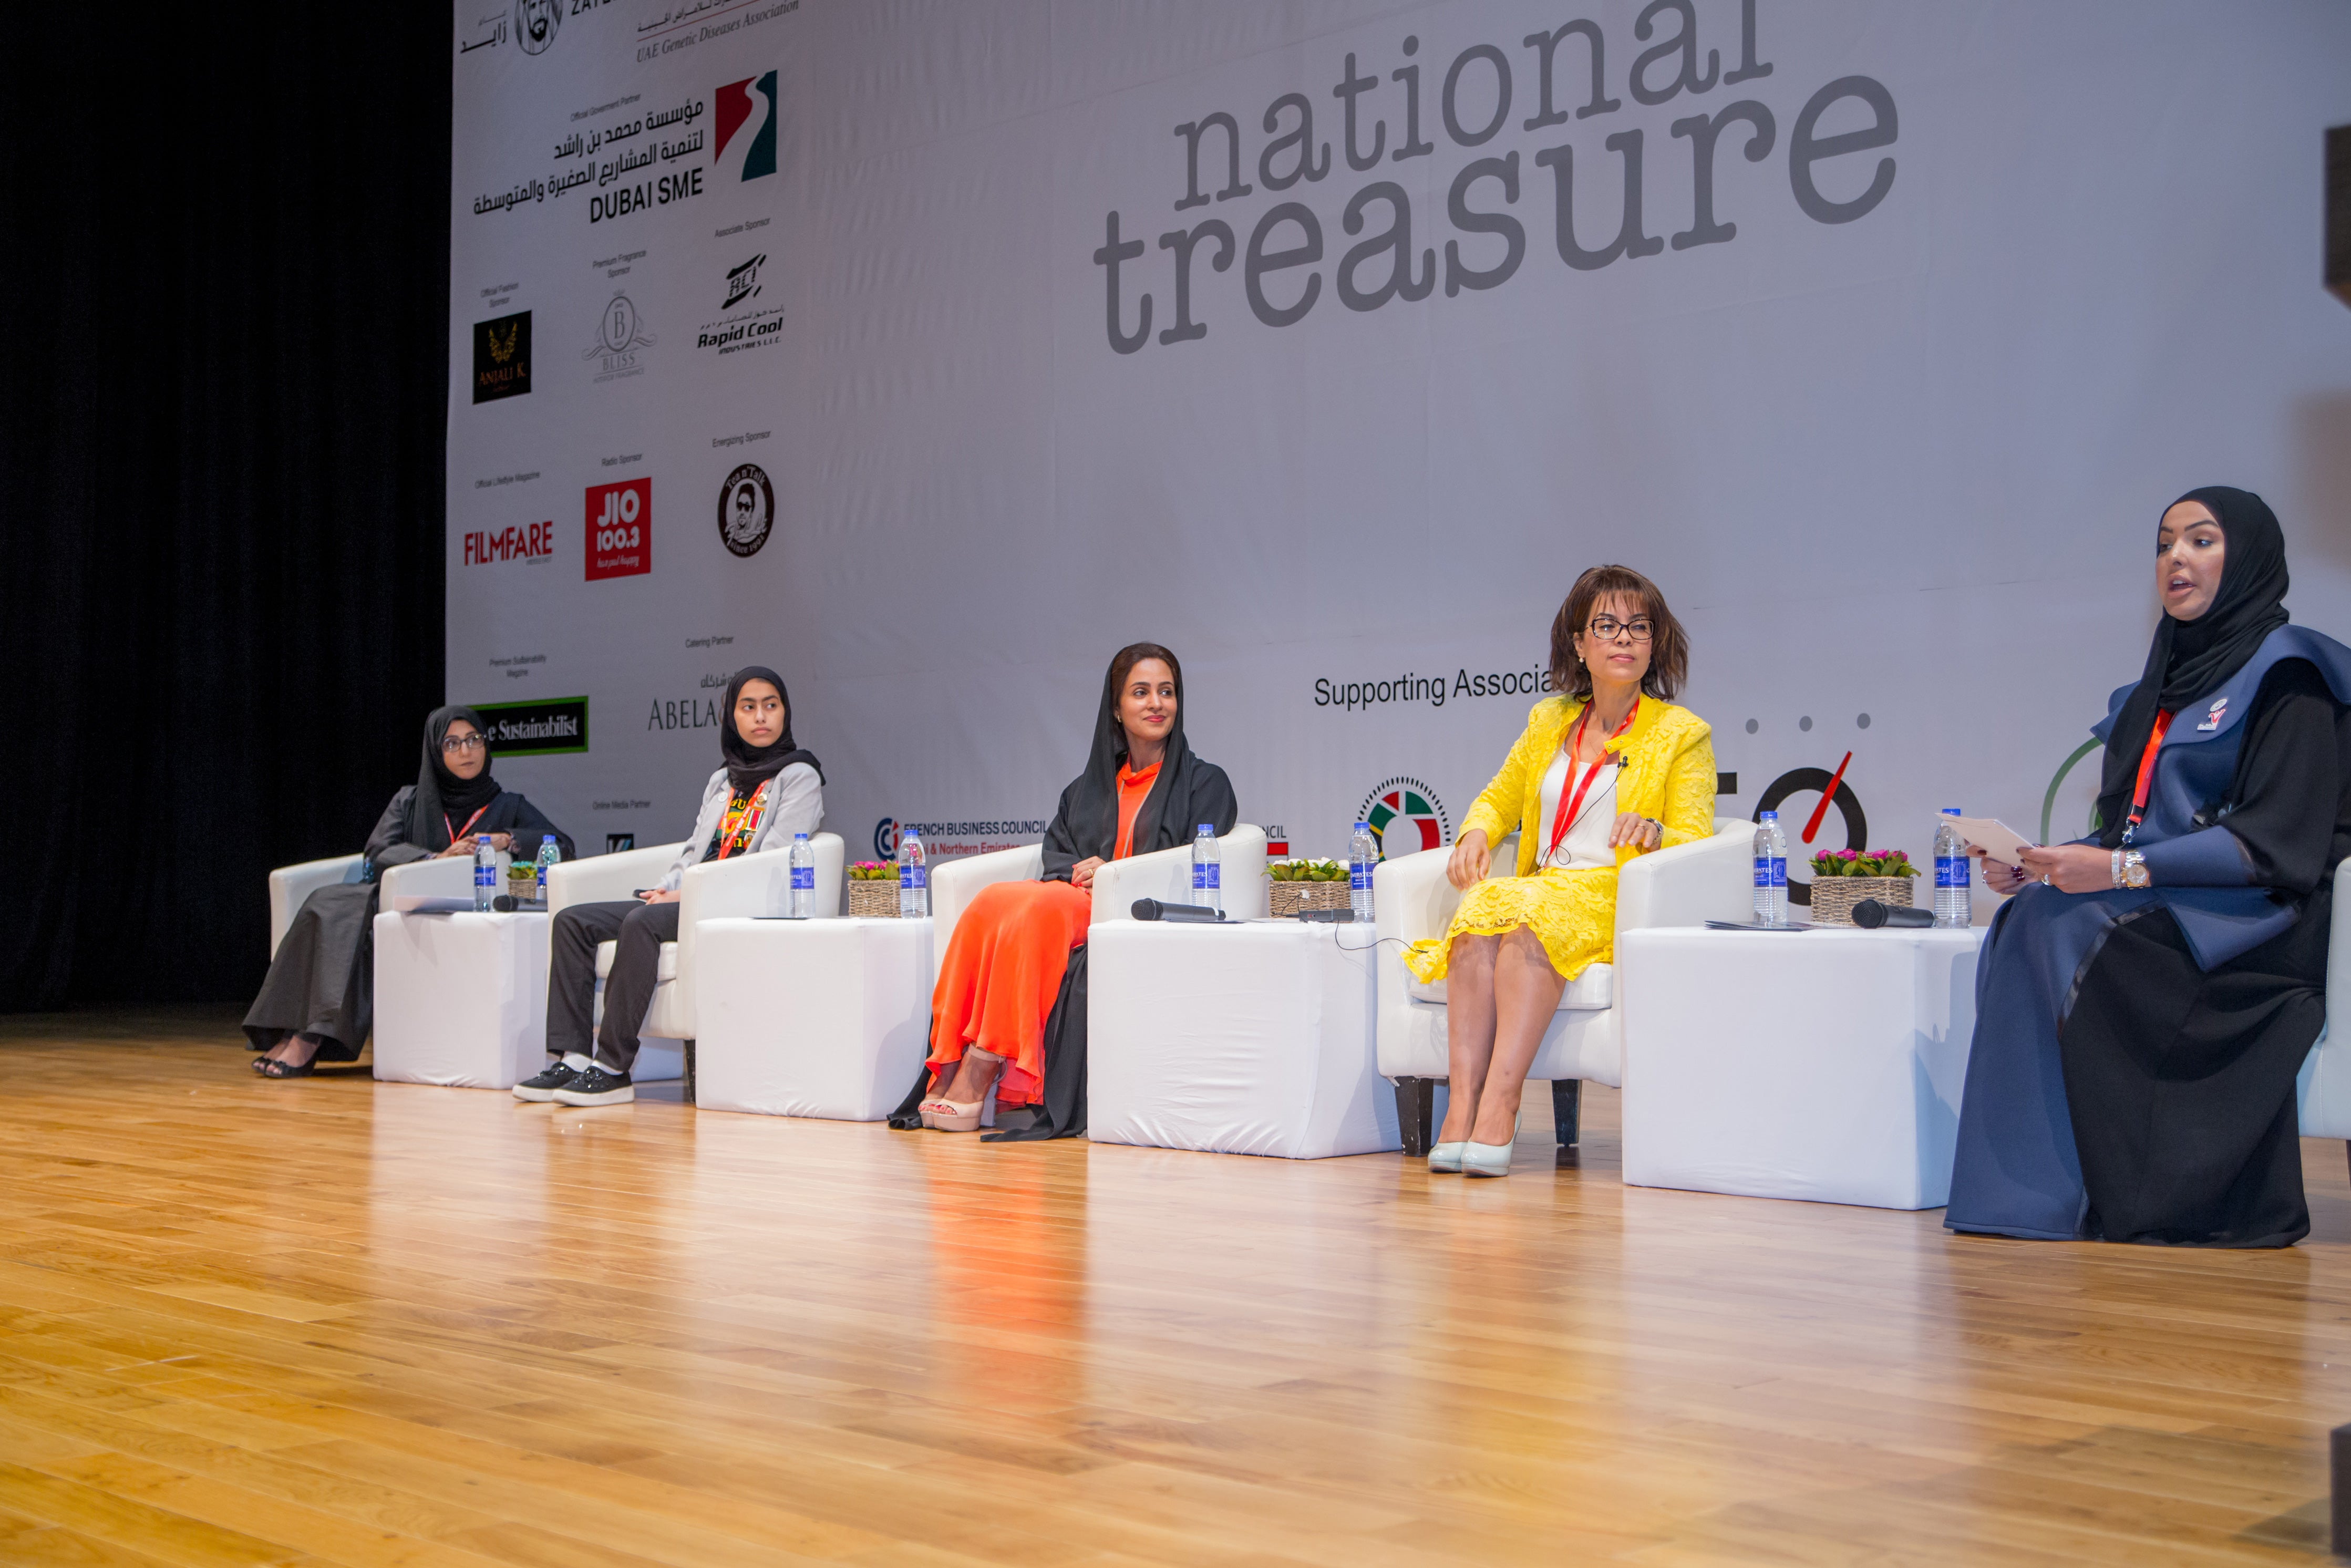 The Recap: National Treasure Conference 2018 Focuses On